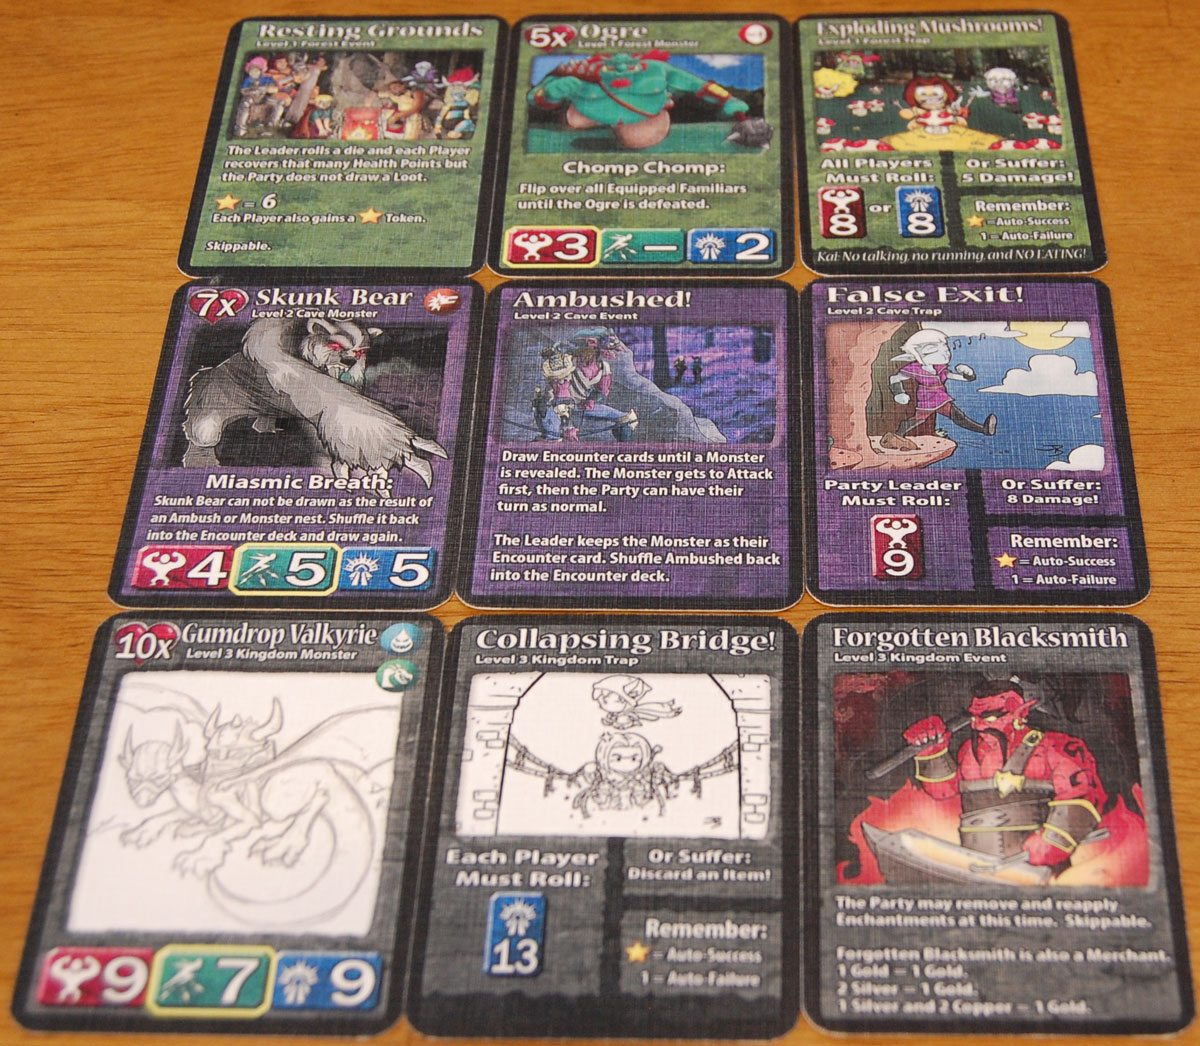 Some of the Random Encounters cards from the prototype. Artwork subject to change. Image by Rob Huddleston.